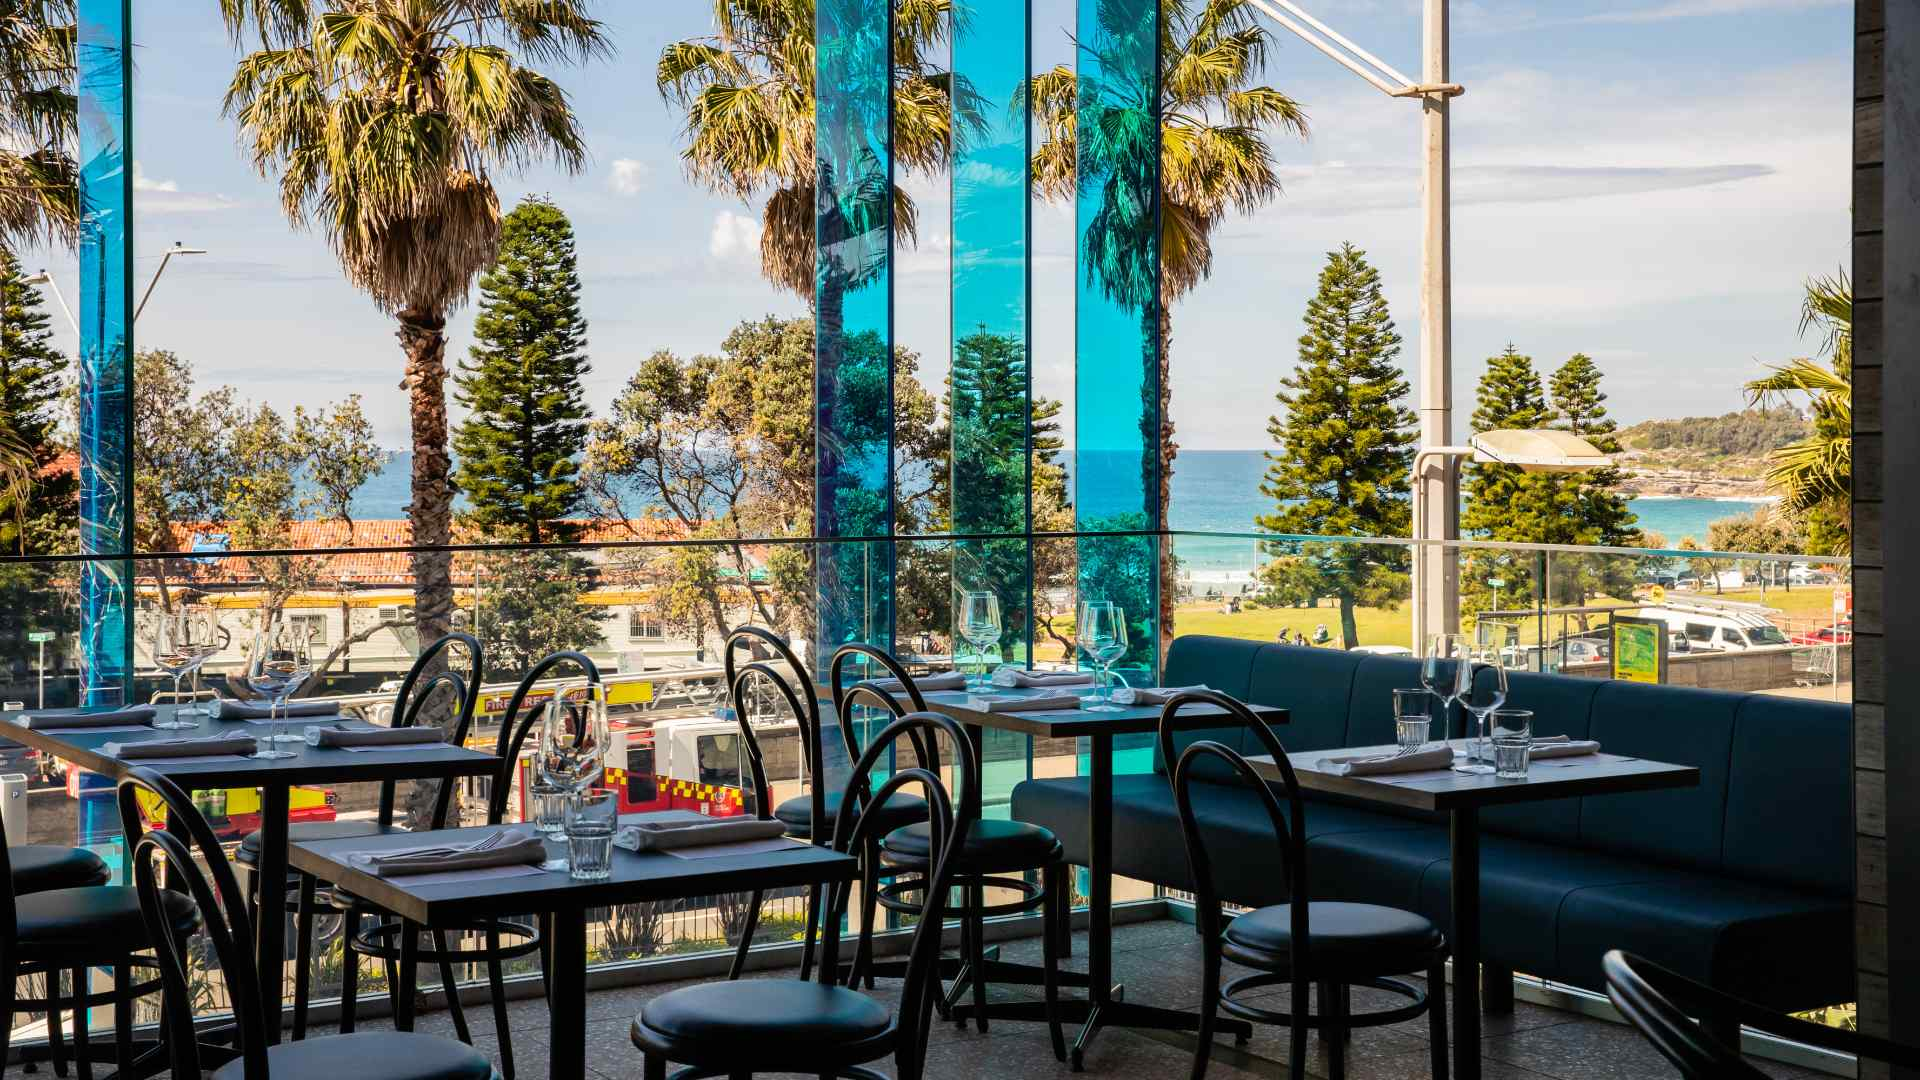 Now Open: Lola's Is Bondi's New Mediterranean Restaurant and Bar with Ocean Views